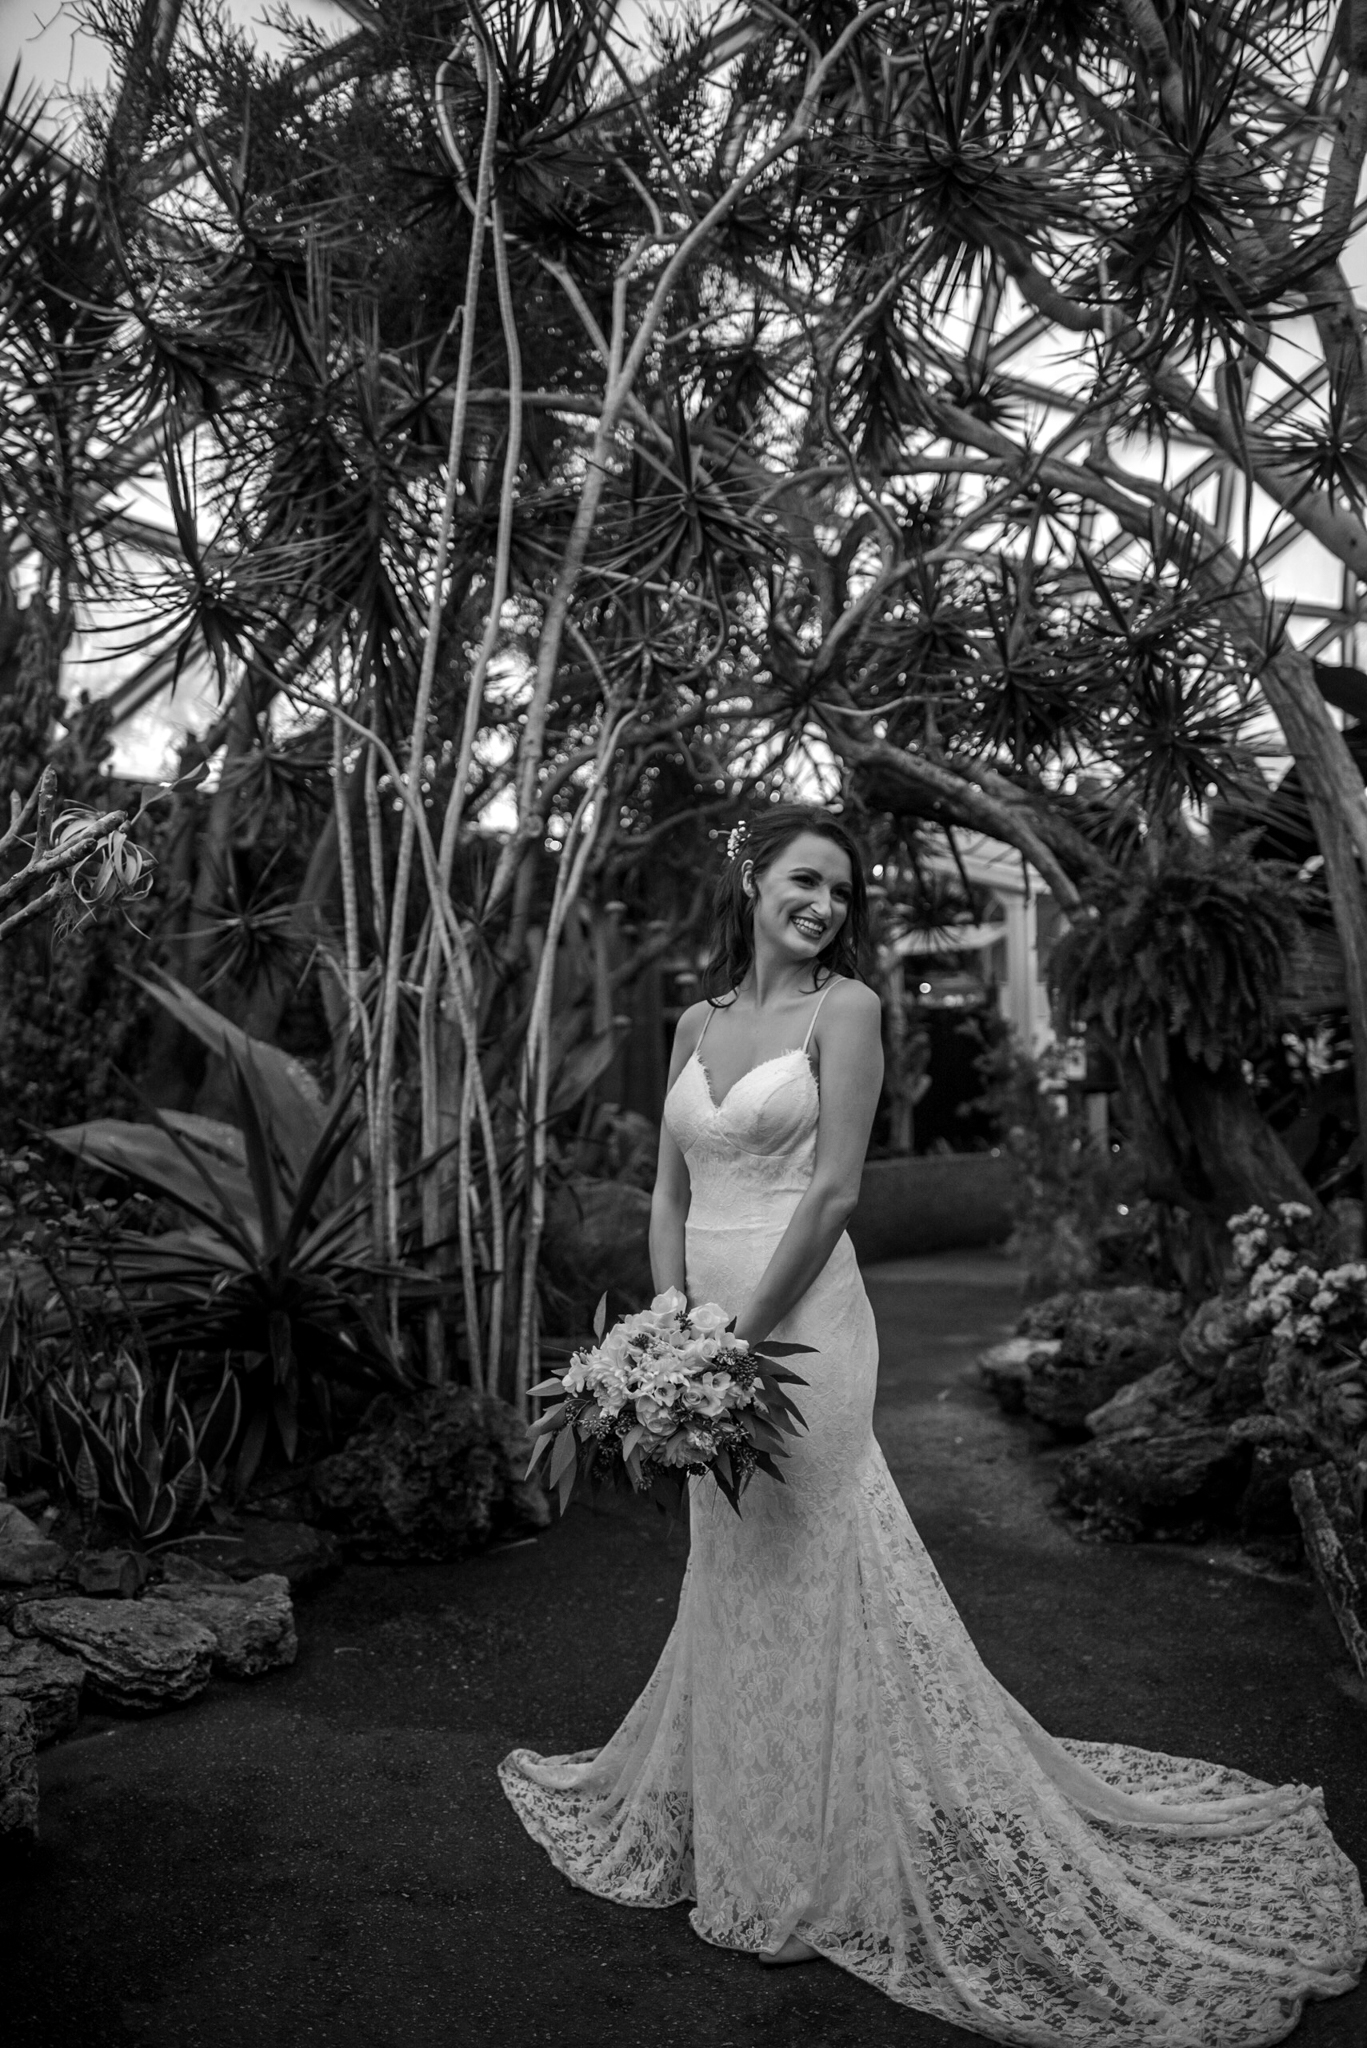 Queen Elizabeth Park Wedding Photographer-75.jpg